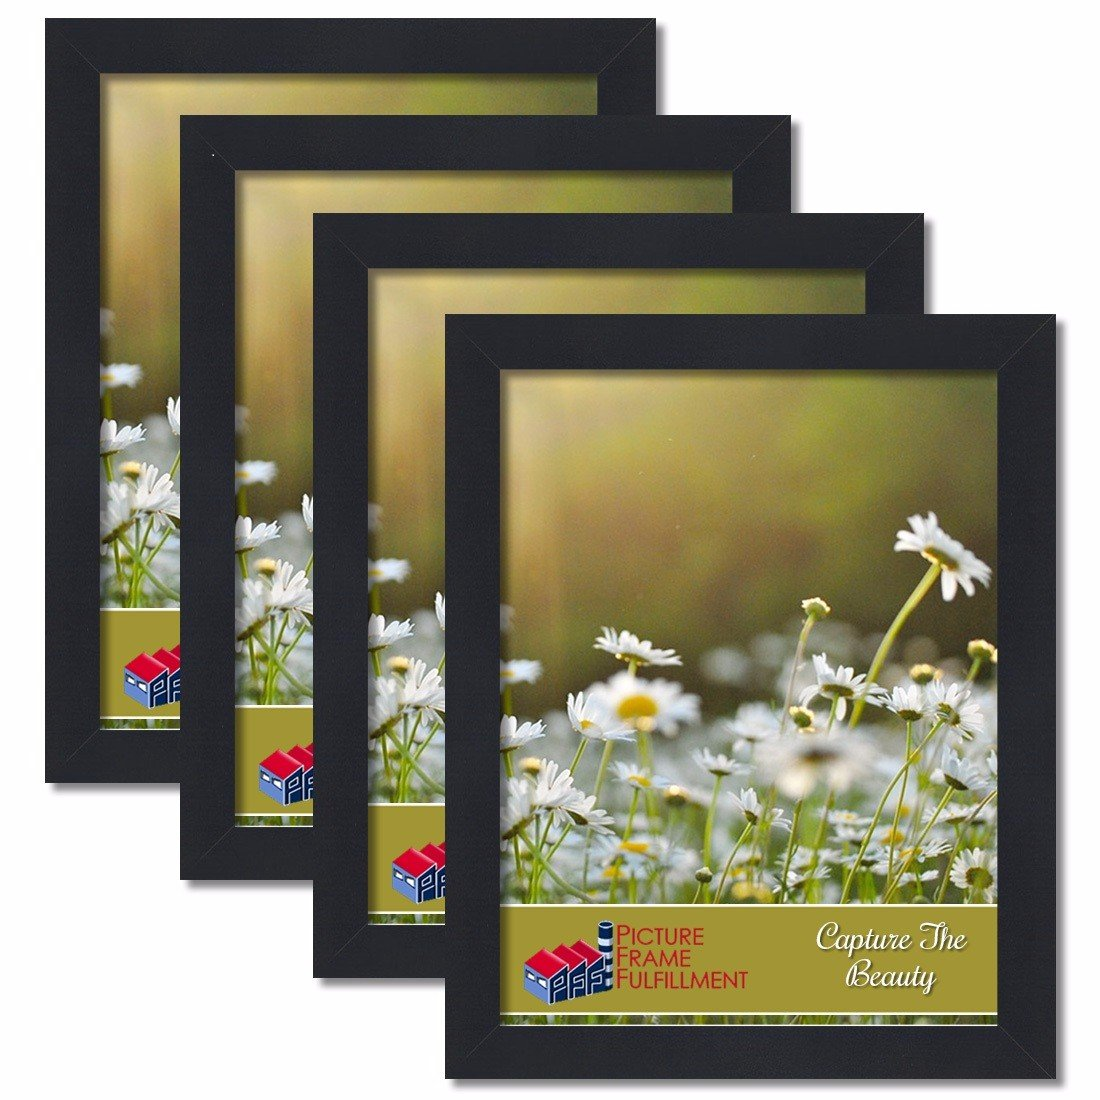 PictureFrameFactoryOutlet 16 by 20-inch Picture Frame 4-Piece Set, Smooth Finish, 1.25 Inch Wide, Black by PictureFrameFactoryOutlet